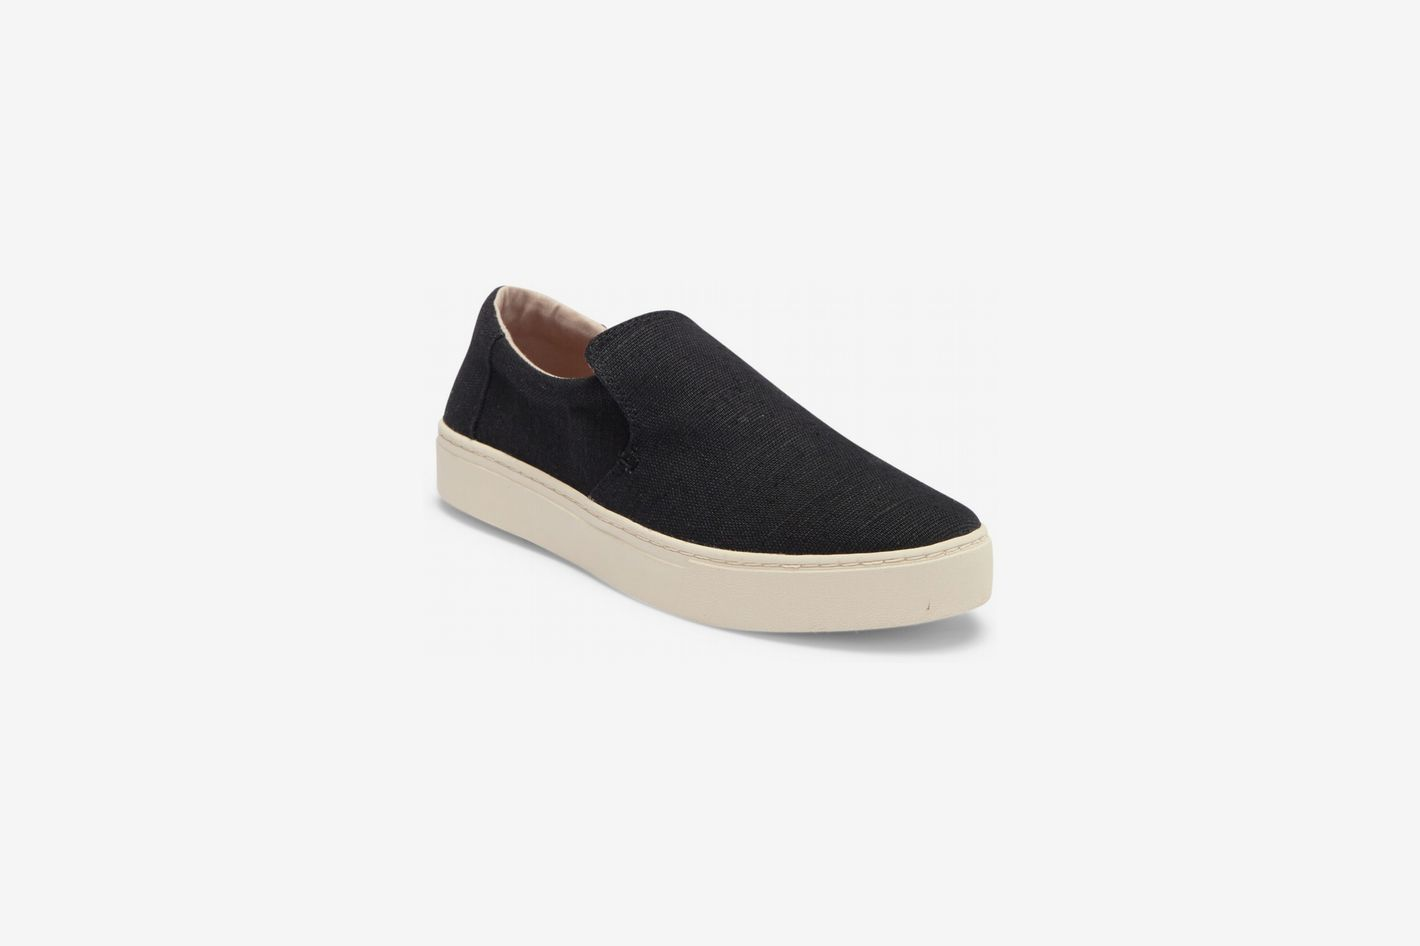 Toms Lomas Canvas Slip-On Sneaker